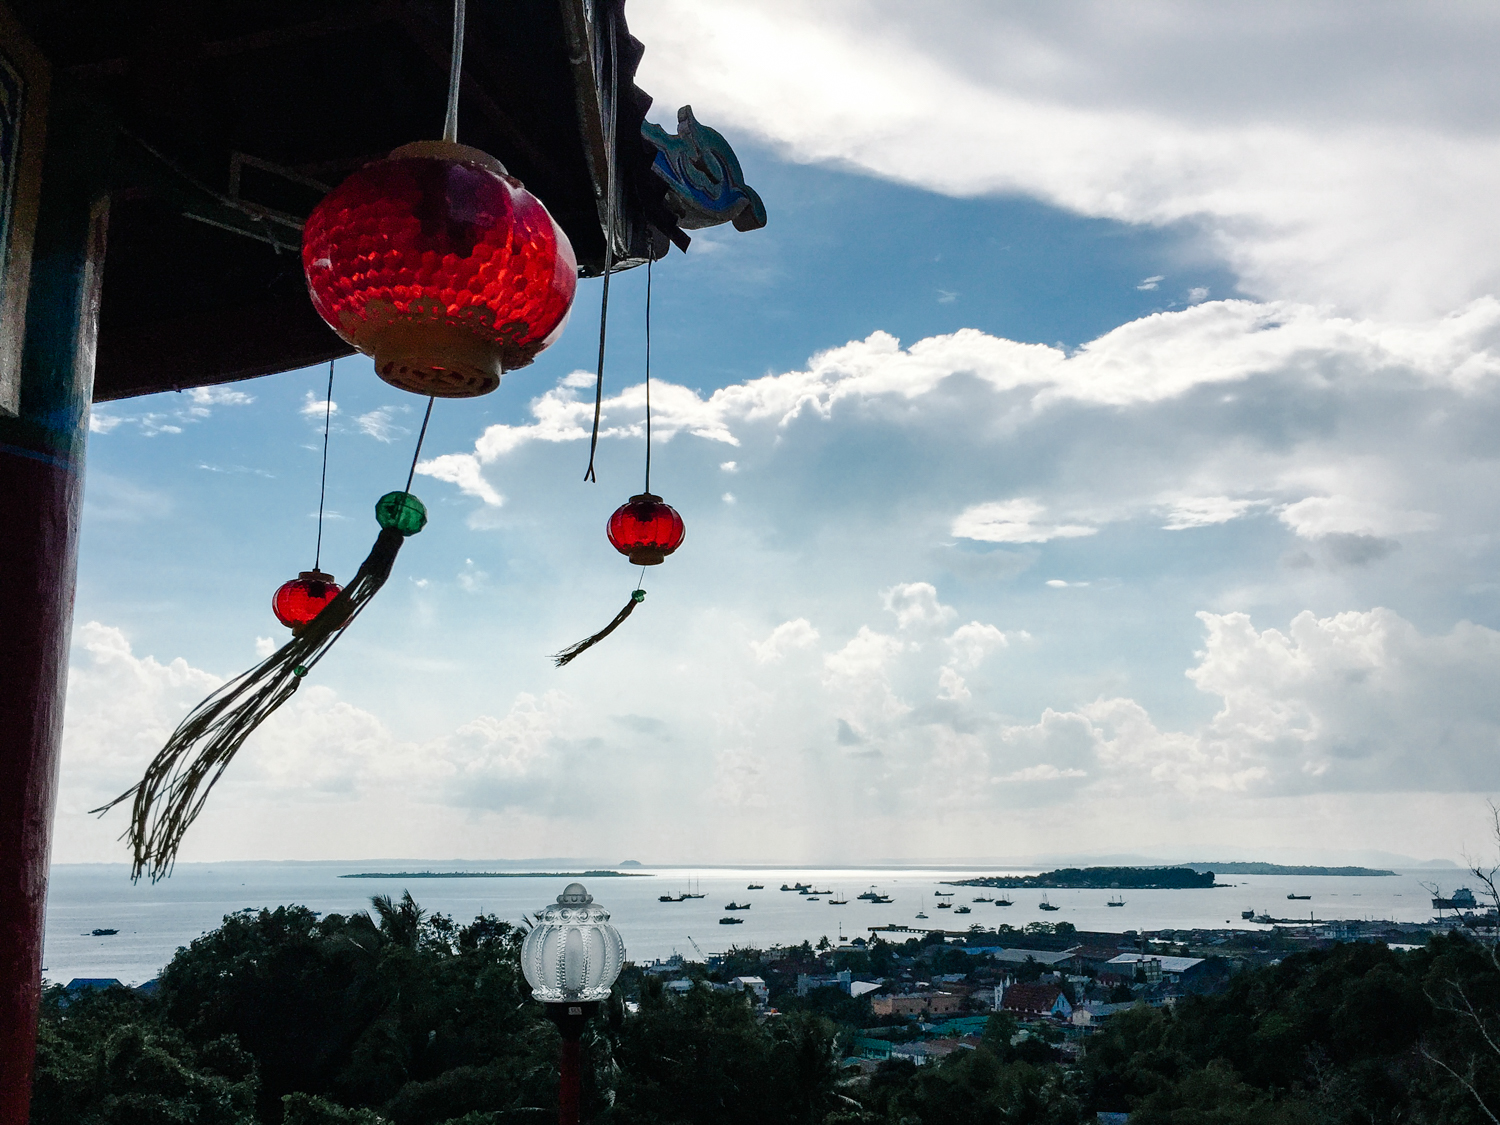 Panoramic view of the ocean from a Buddhist temple on top of the mountain in Sorong.